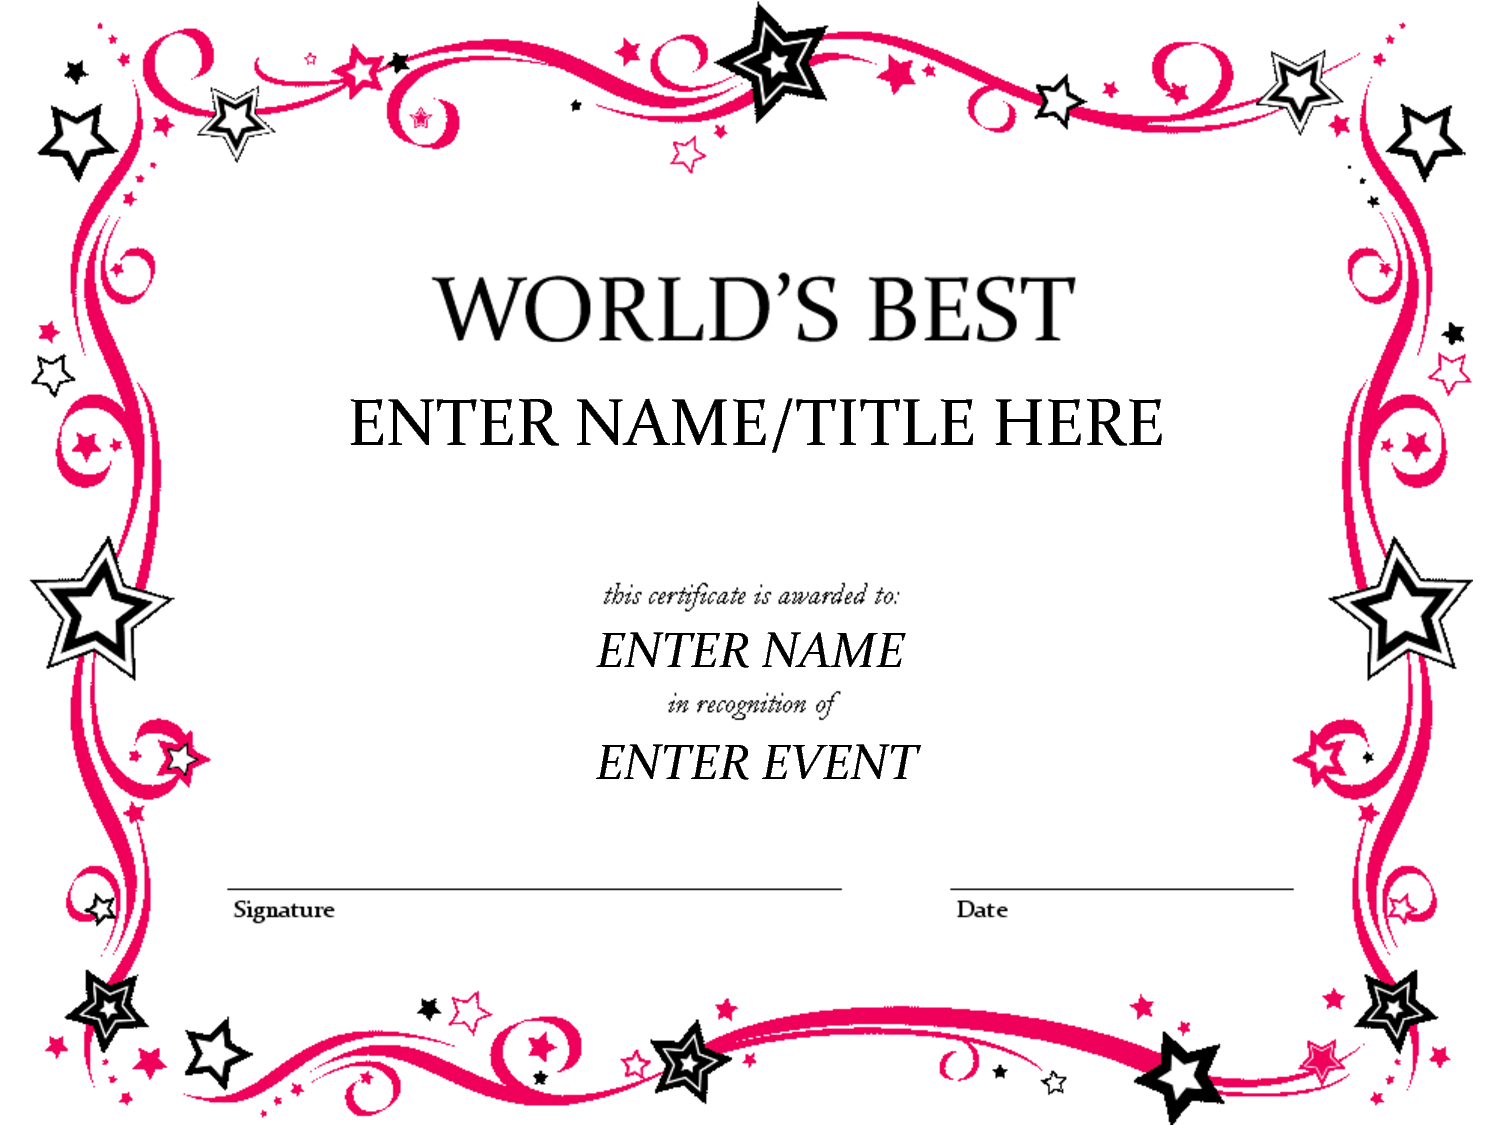 free funny award certificates templates | Worlds Best Custom Award ...